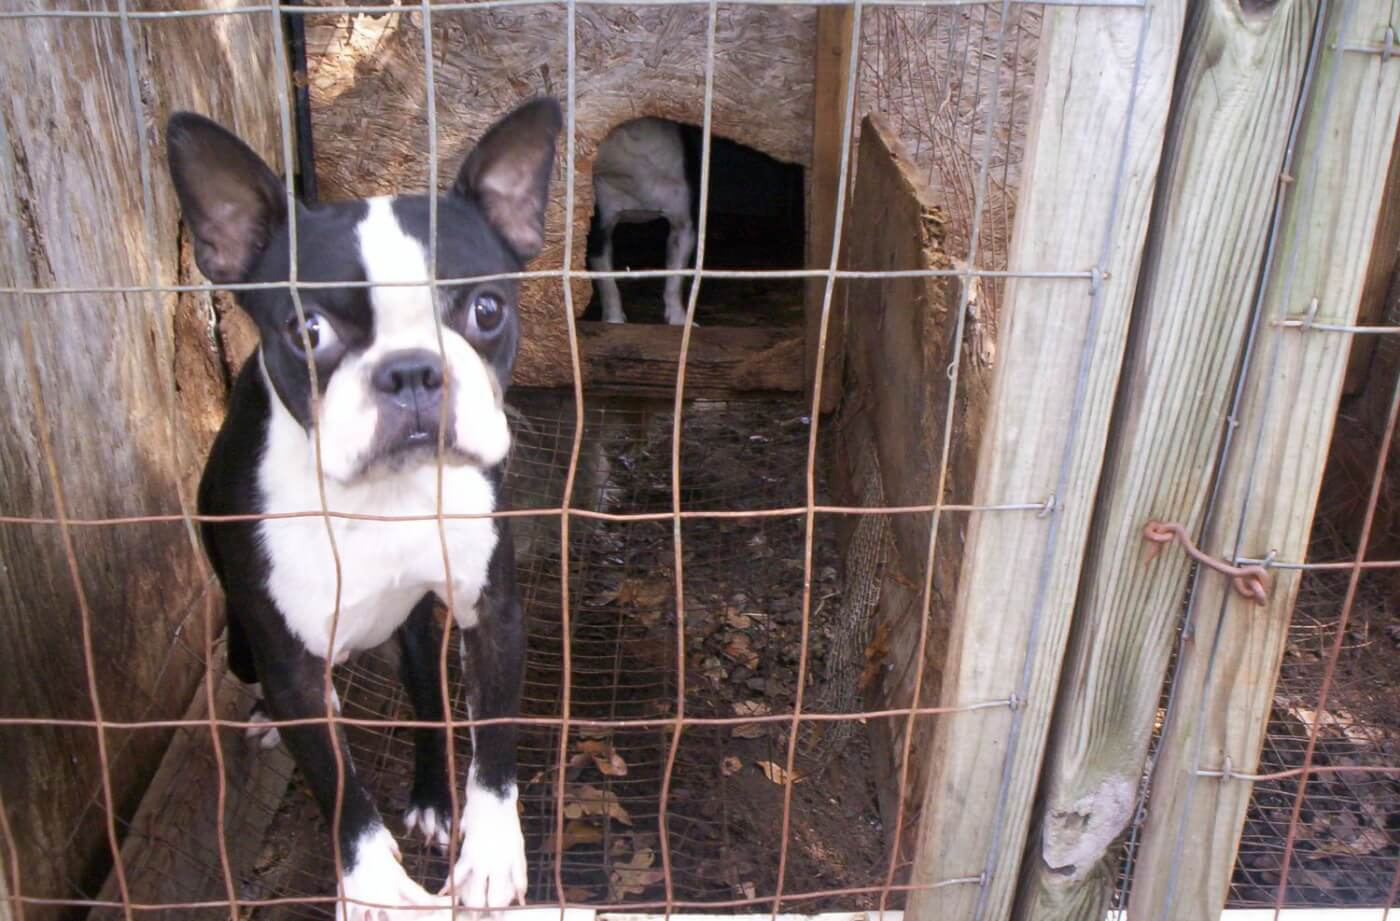 Boston terrier in small dirty enclosure